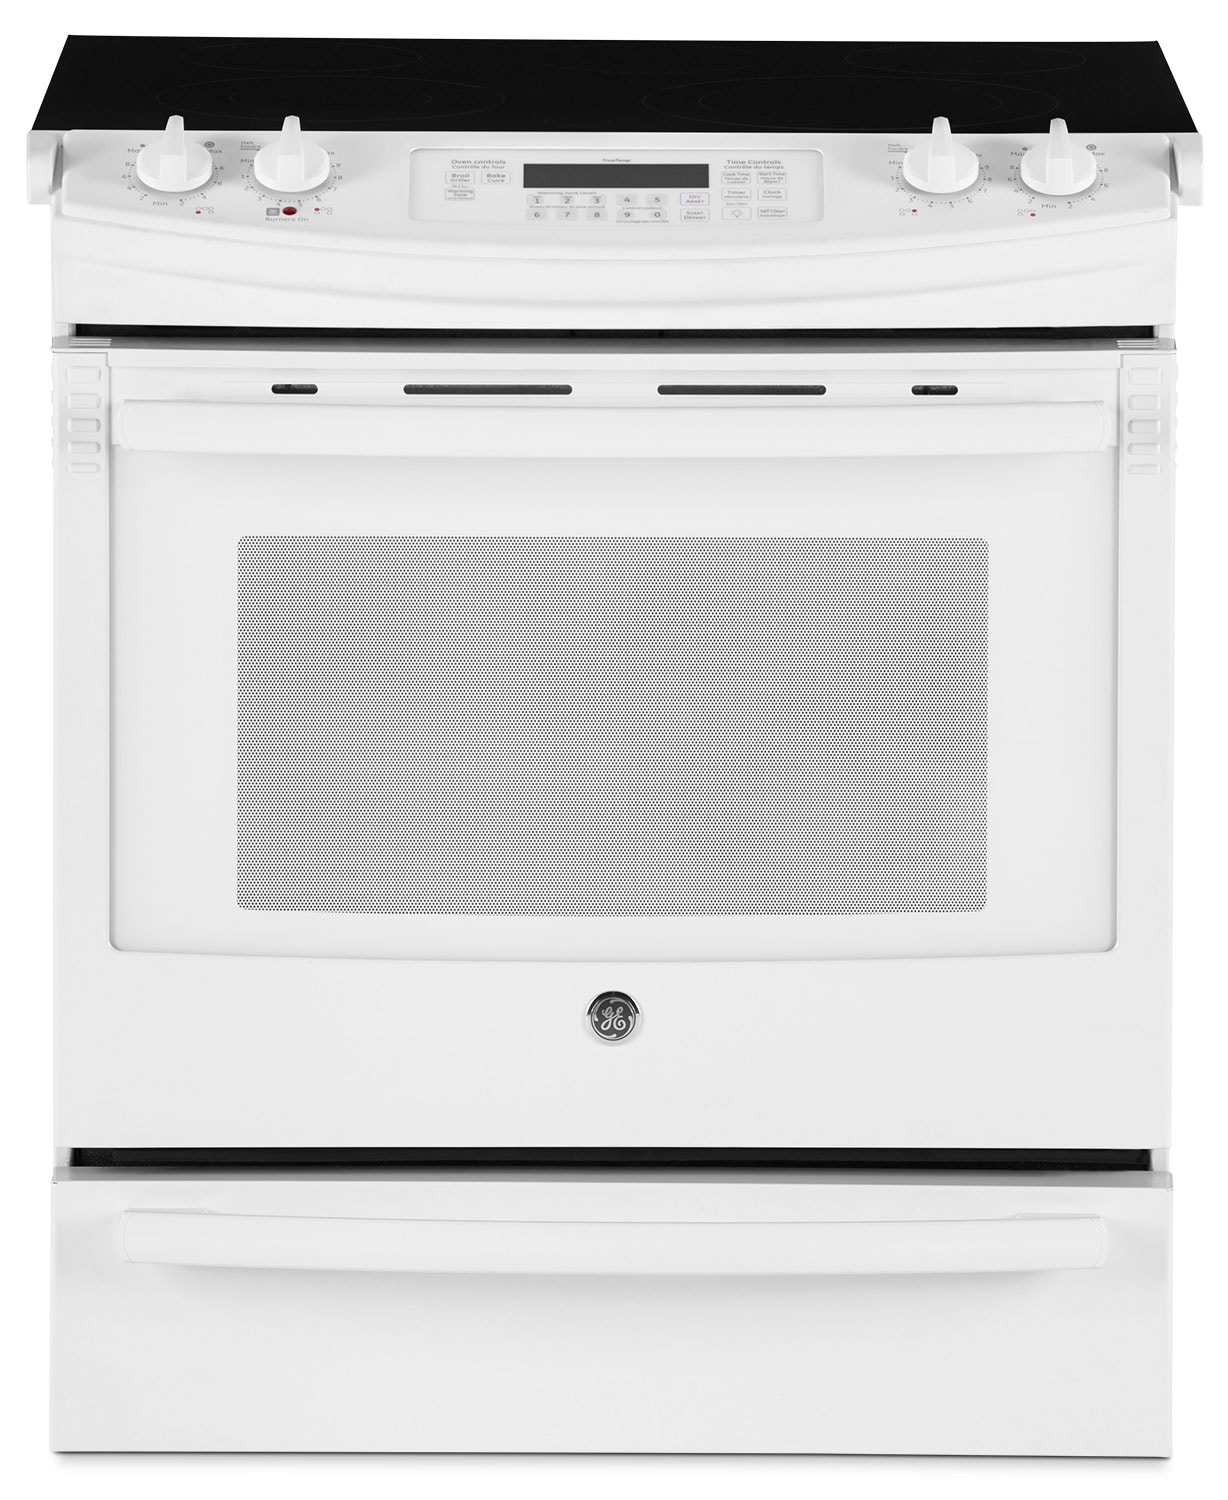 Cooking Products - GE 5.2 Cu. Ft. Slide-In Electric Range – JCS630DFWW